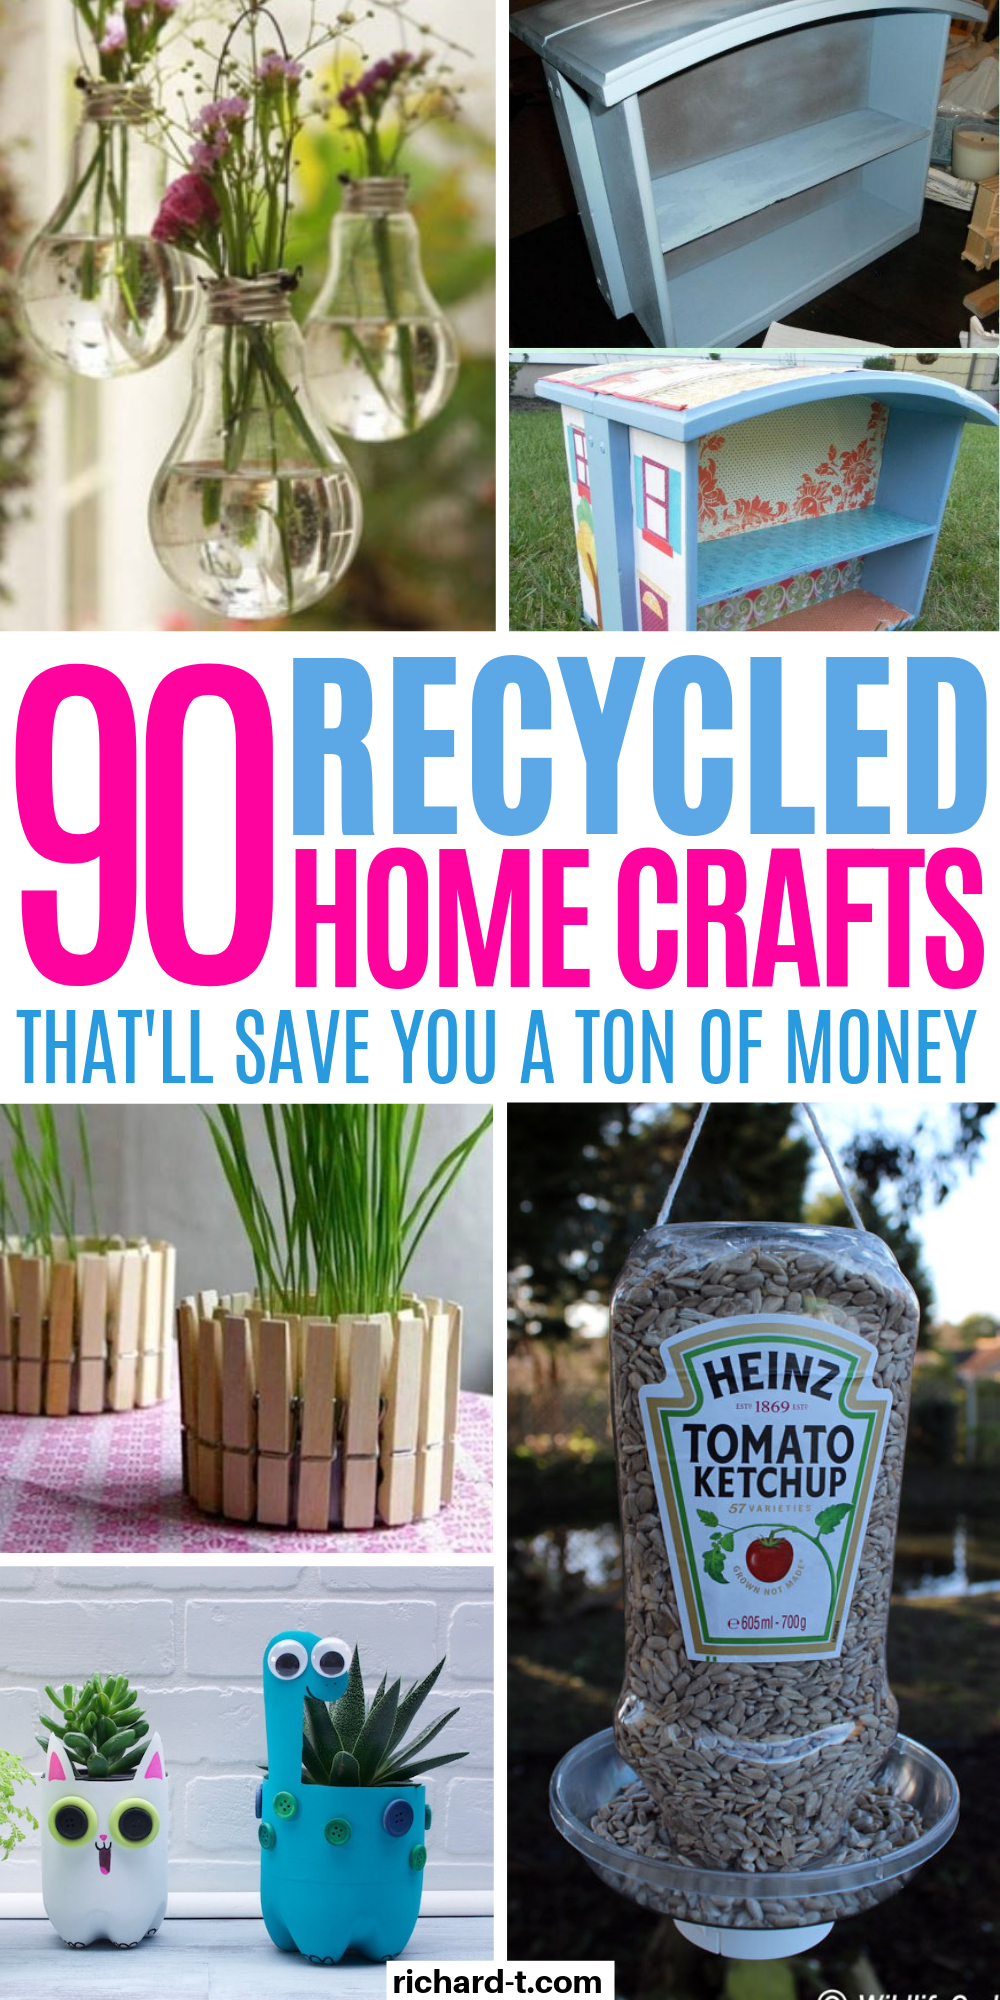 90+ Recycled Projects That'll Actually Transform Your Home - Recycle crafts diy, Recycled crafts kids, Recycled crafts kids projects, Recycled crafts, Recycling projects for kids, Recycled house - 90+ Genius recycled projects for your home! These recycled projects & crafts are genius and work really well  Make sure you try them!